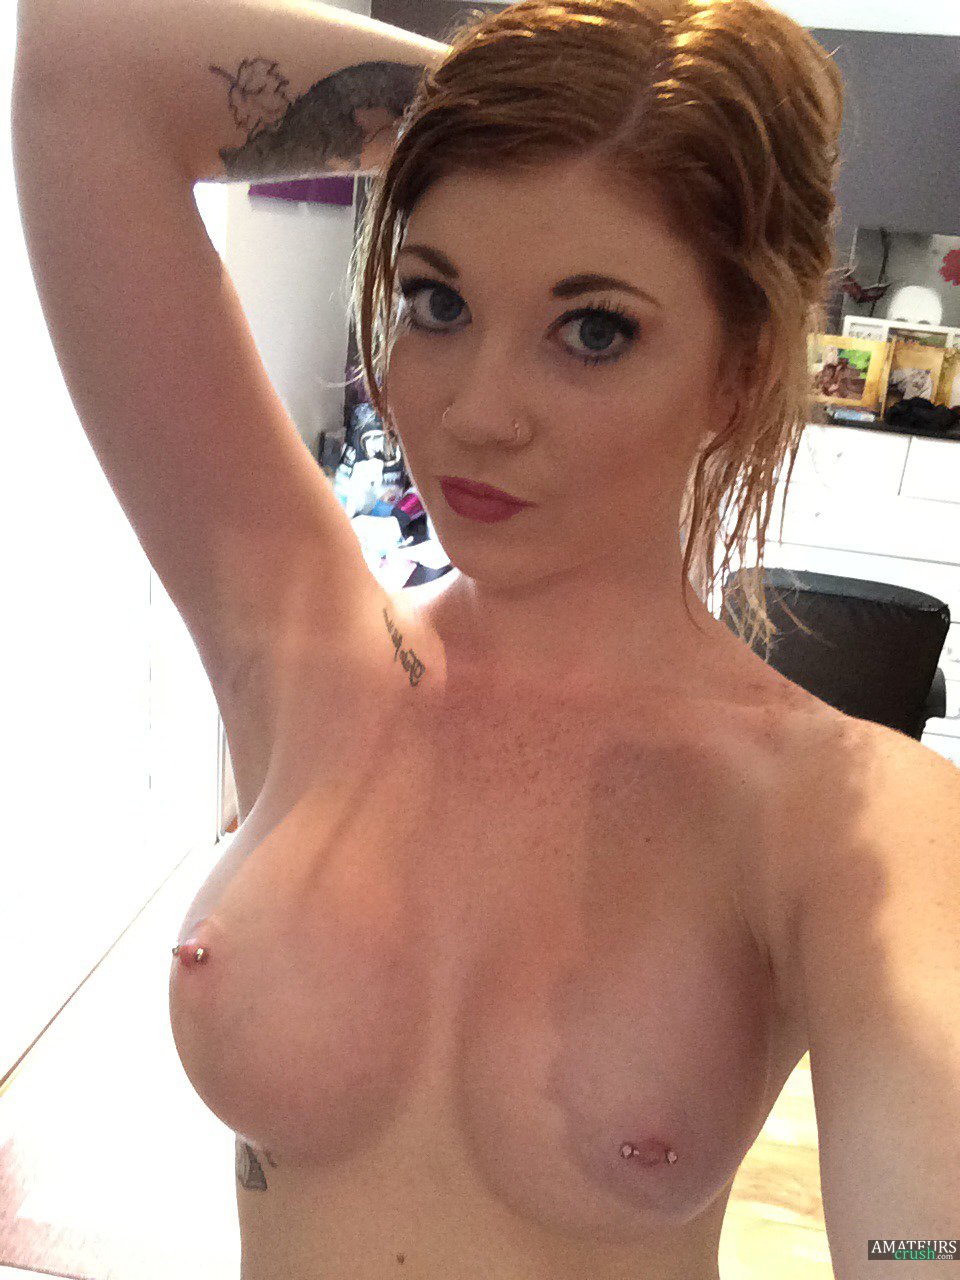 Hot girls selfie of boobs aunty photo gallary